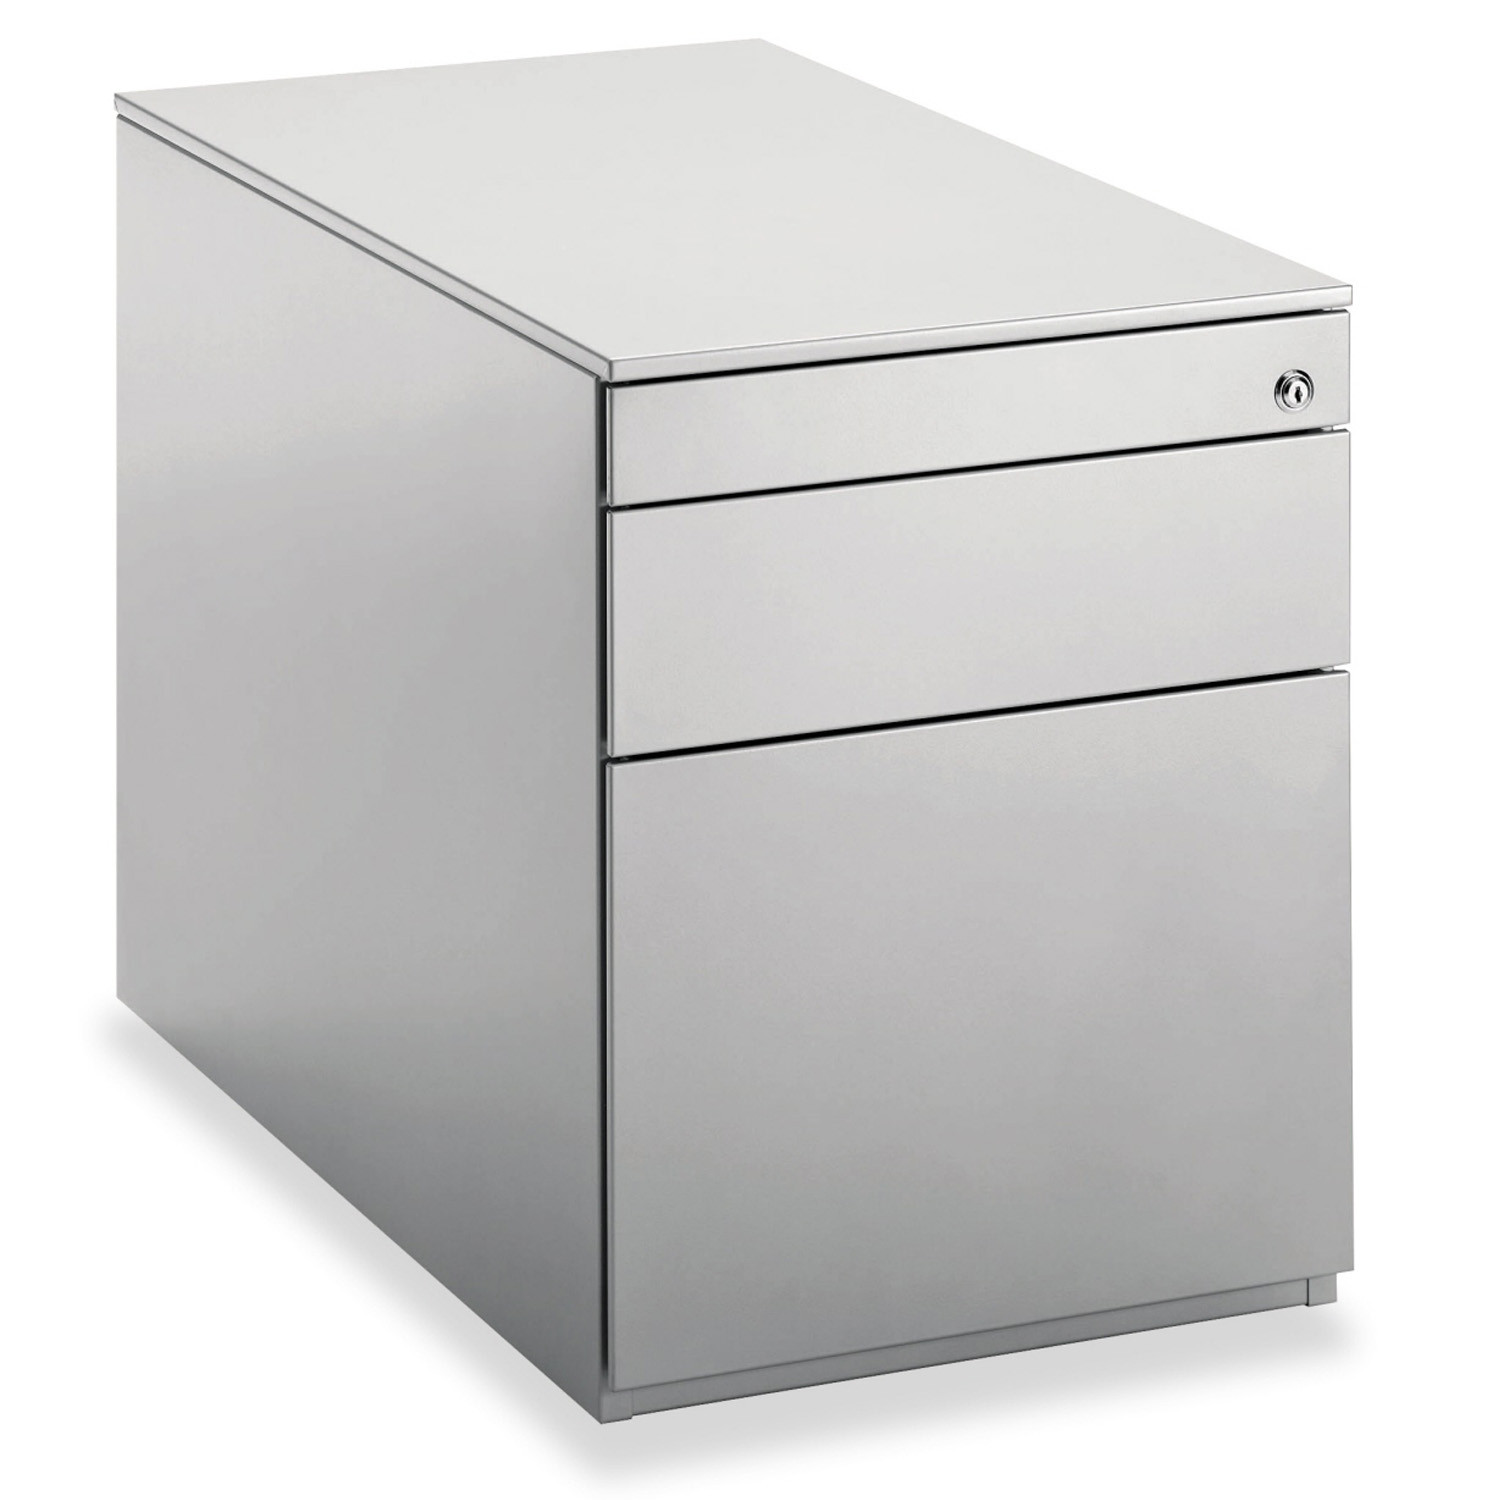 Professional pedestal 1 box drawer + 1 file drawer + 1 stationery drawer